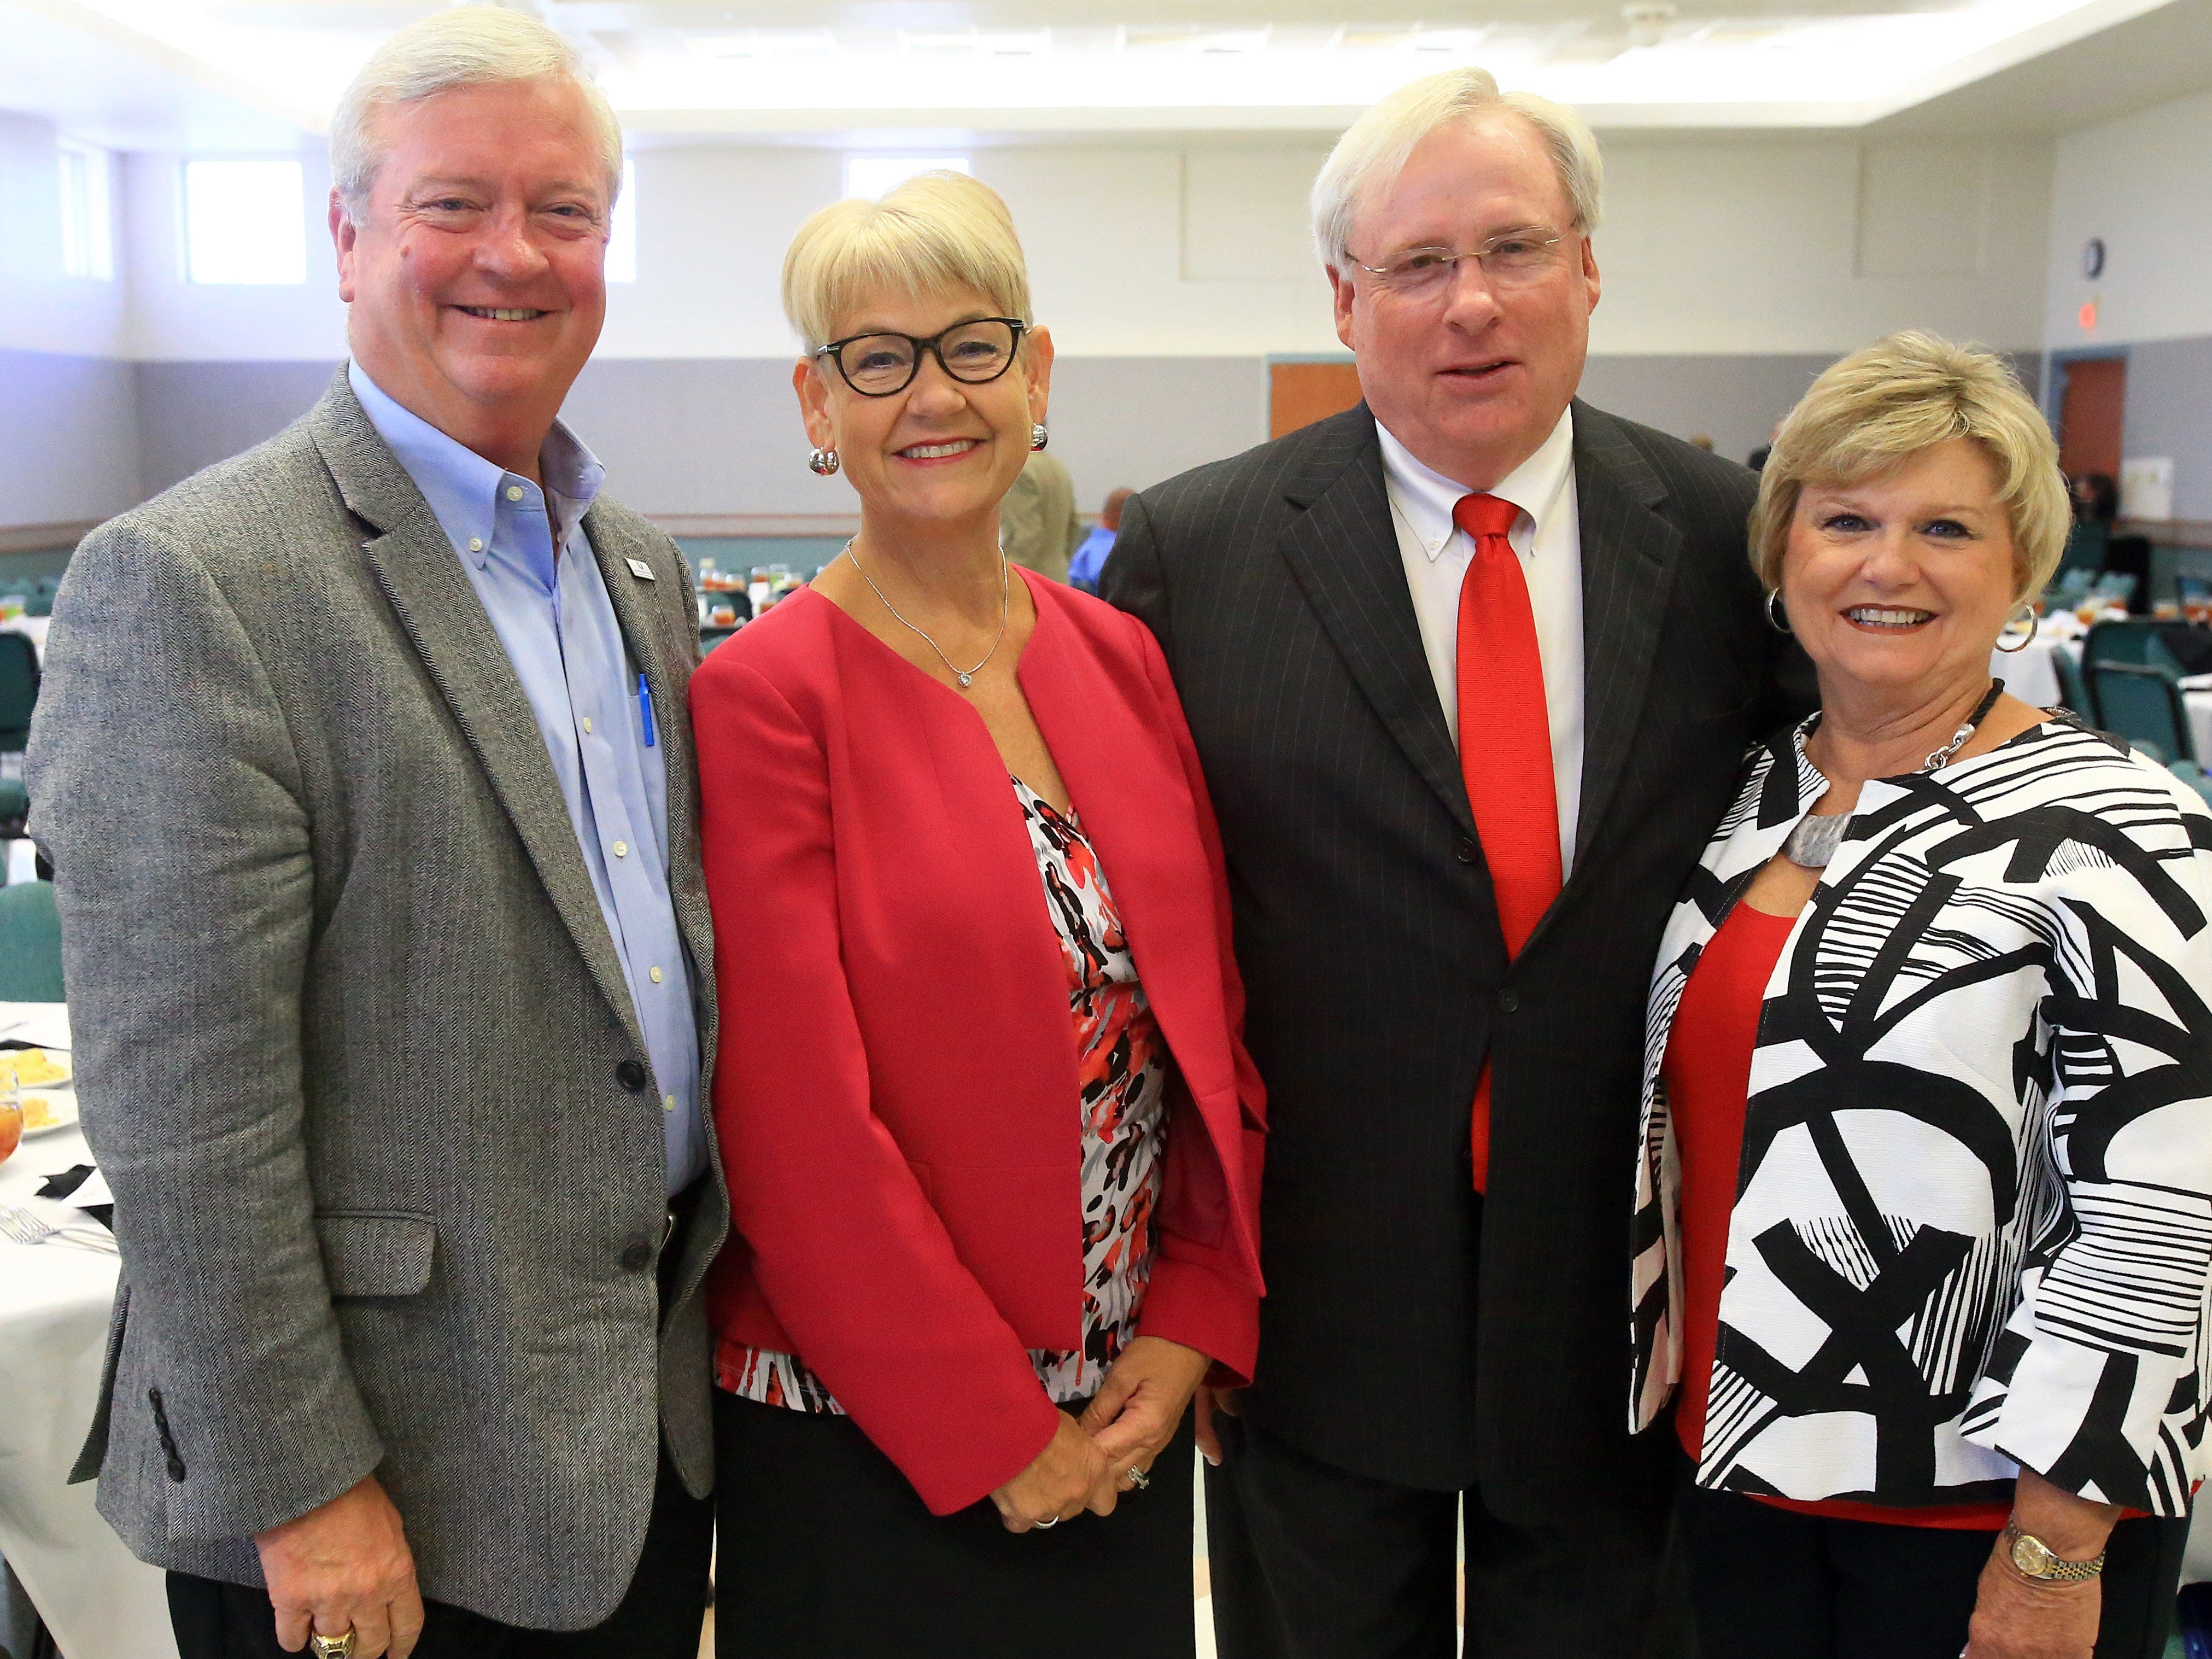 Alan Wilson (from left) Catrina WIlson, Wes Hoskins and Janie Hoskins attended the State of the Port Luncheon on Thursday, Aug. 18, 2016, at the Portland Community Center in Portland.